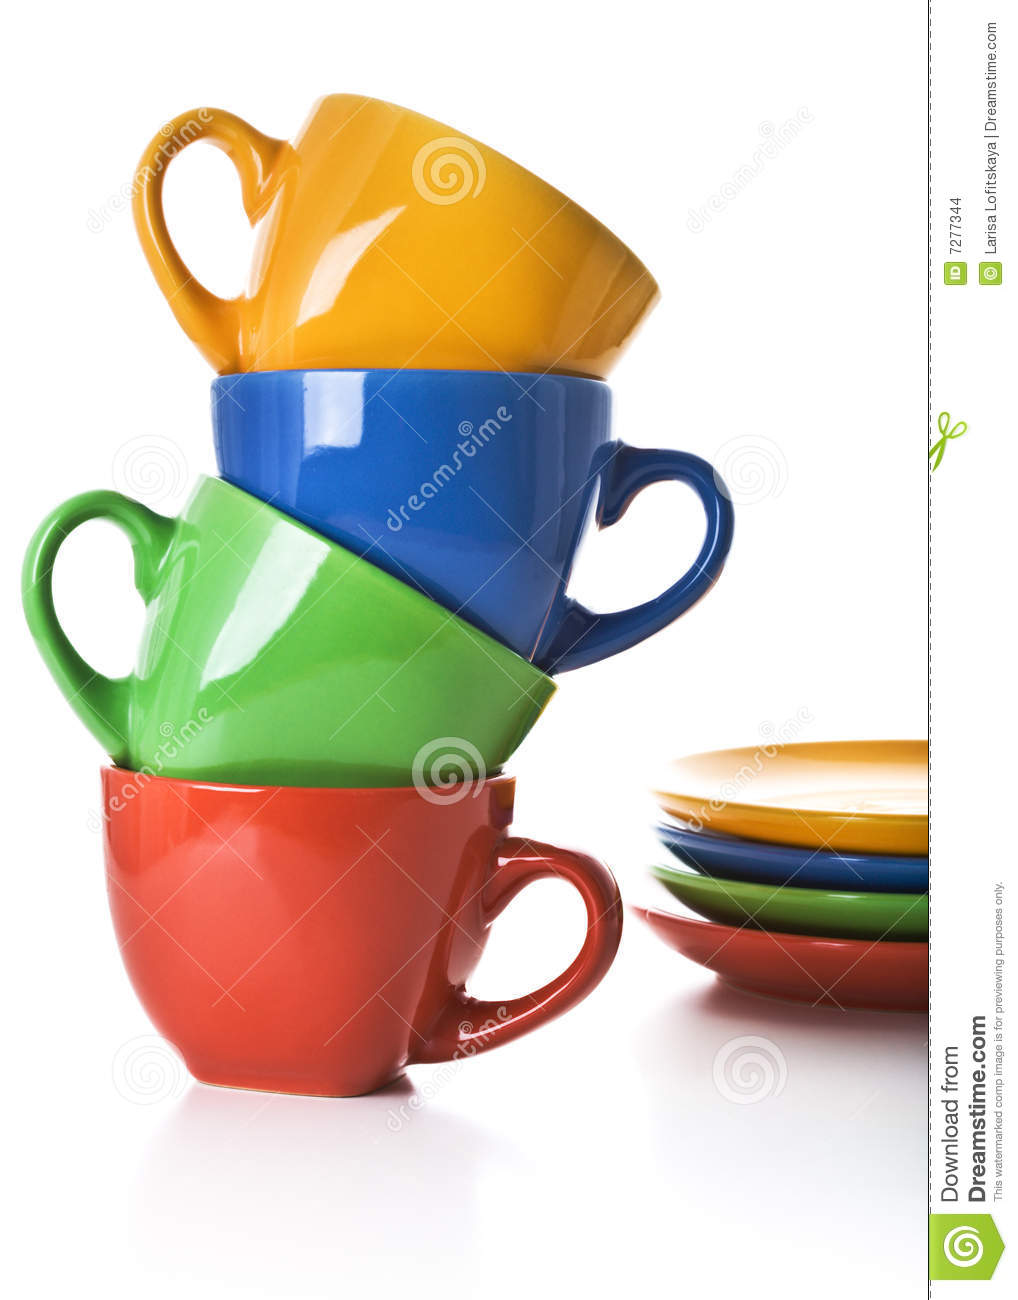 Fancy Teacup Clip Art.